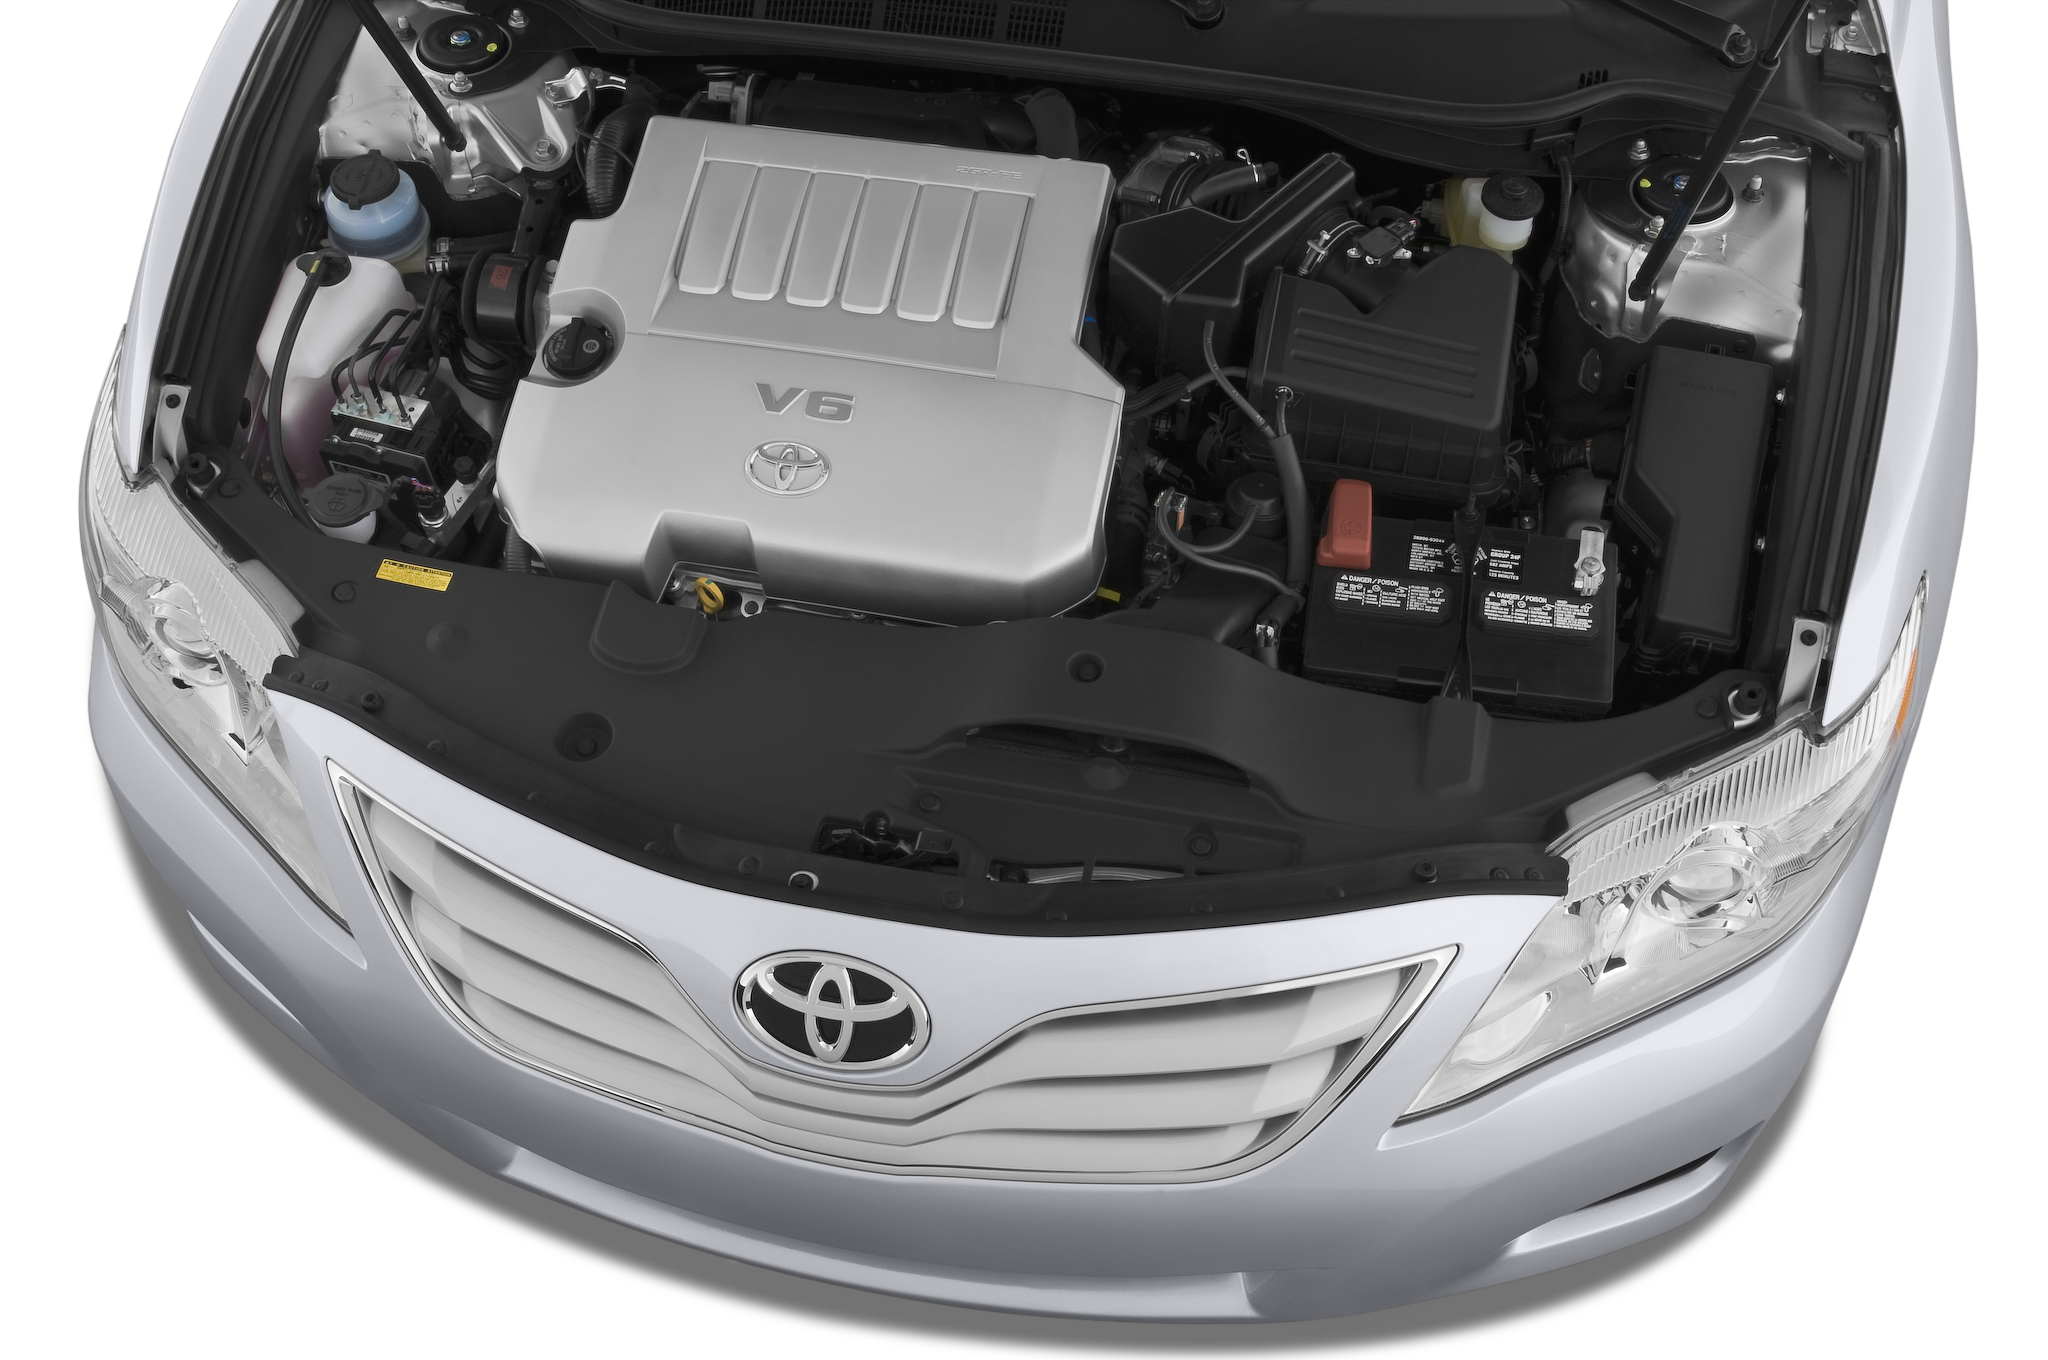 2011-toyota-camry-le-v6-6-speed-at-sedan-engine Breathtaking toyota Camry 2006 Price In Ksa Cars Trend